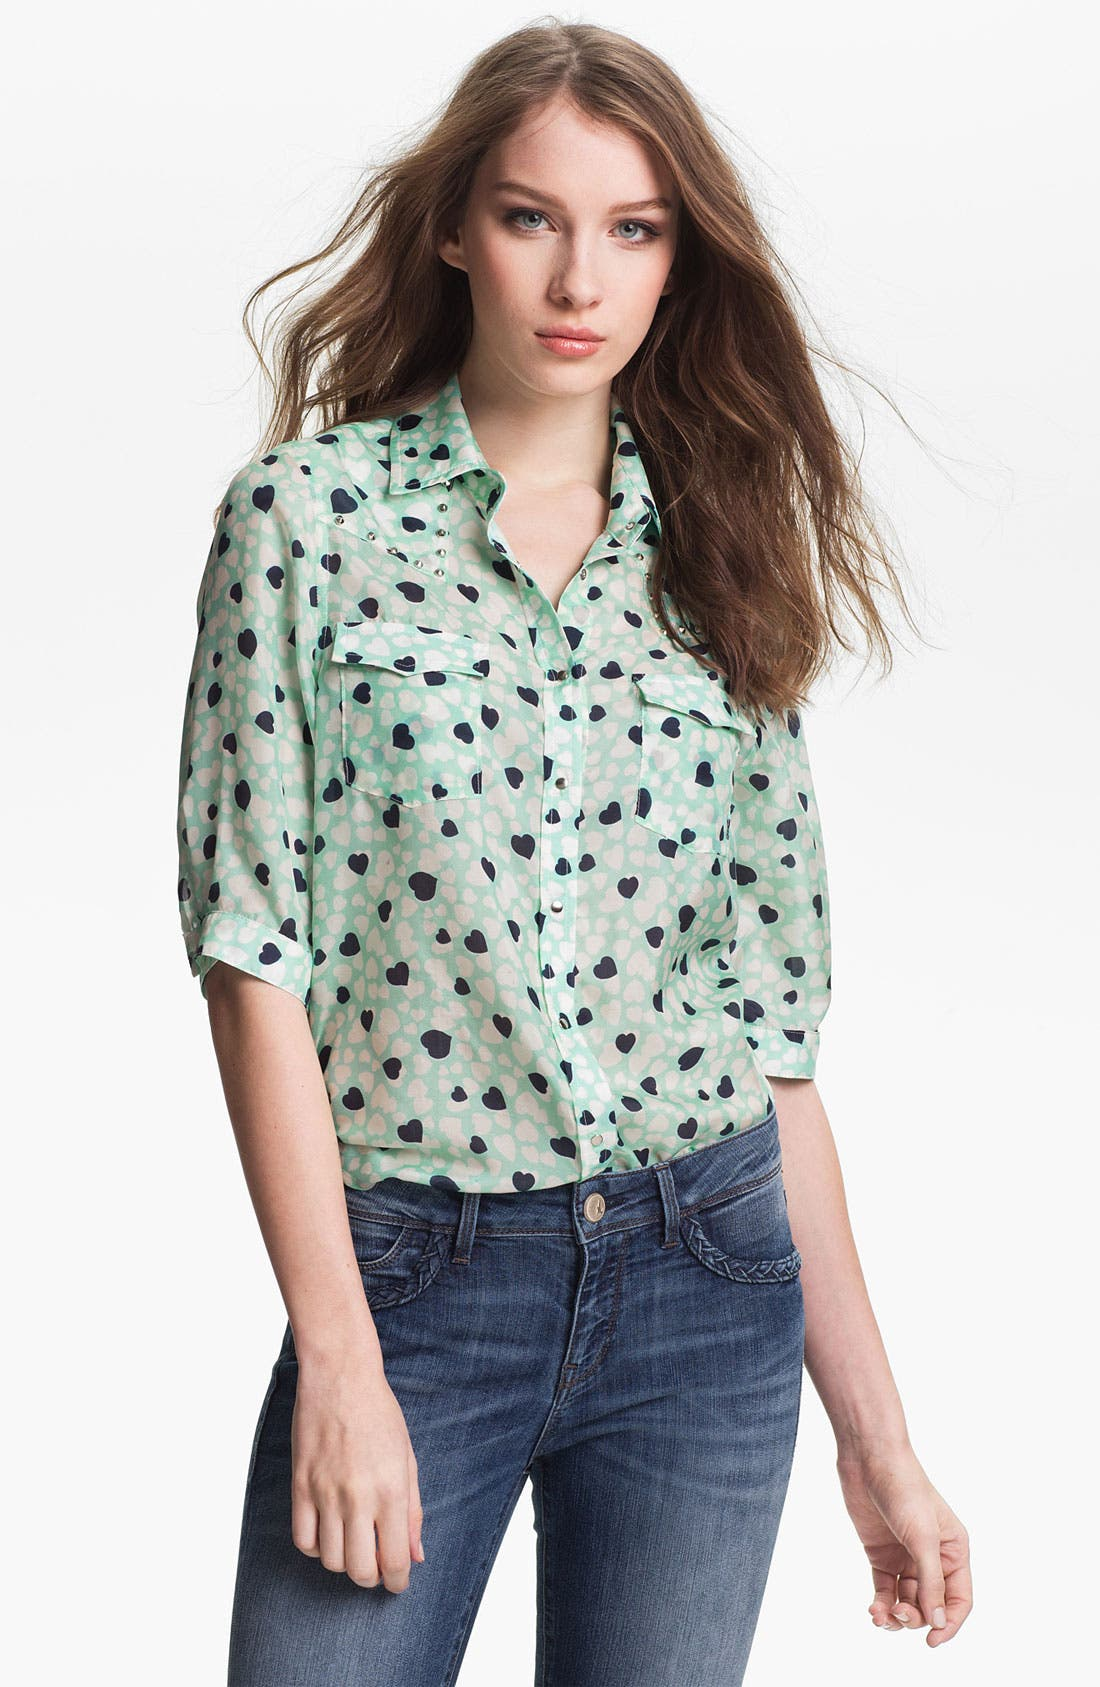 Alternate Image 1 Selected - Two by Vince Camuto 'Candy Heart' Western Blouse